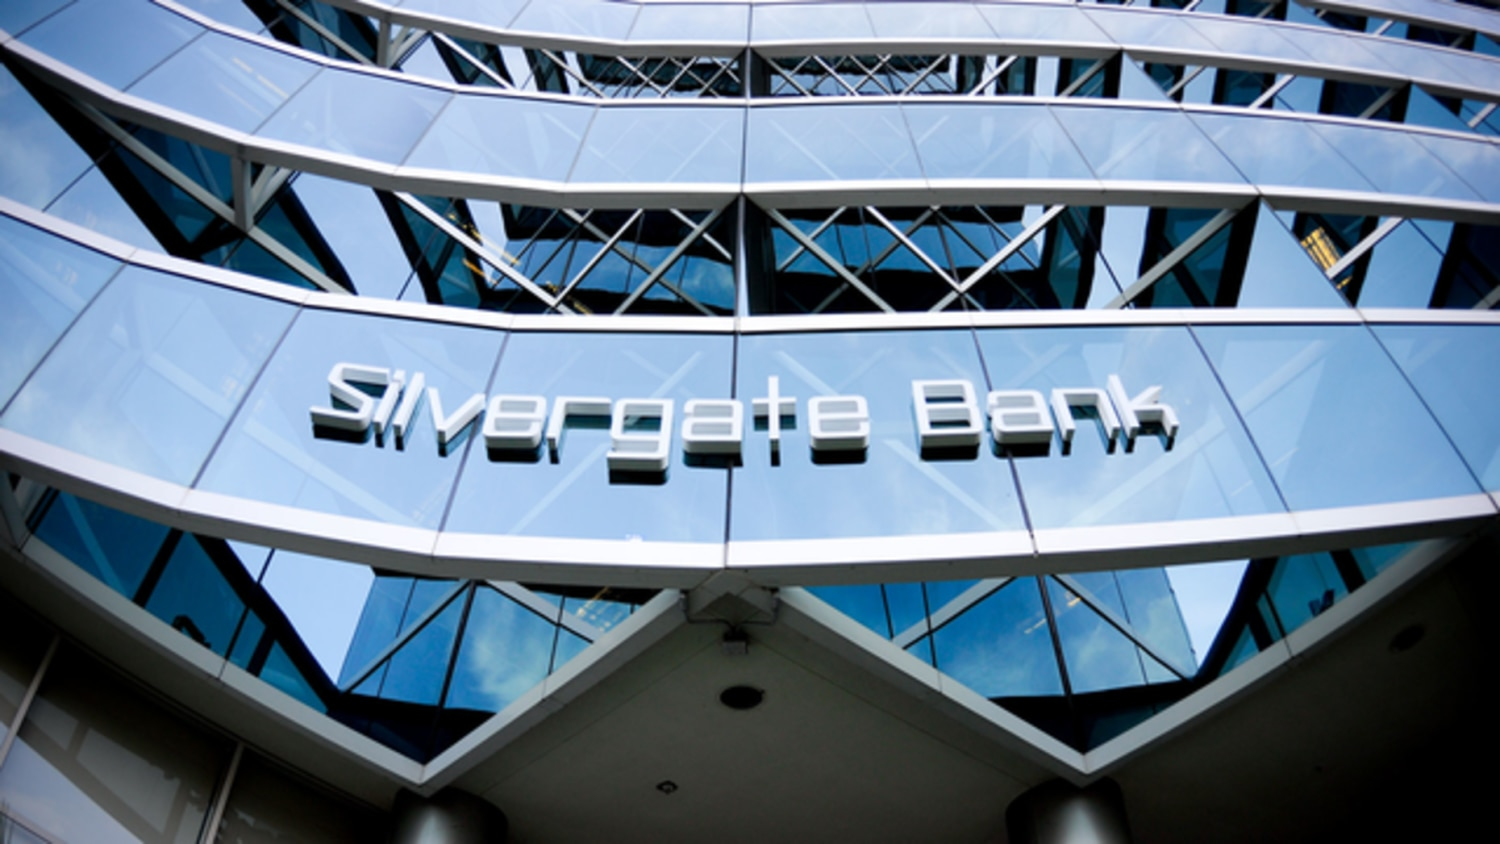 Morgan Stanley Silvergate Report Sends Crypto-Friendly Bank Up 7%on October 8, 2021 at 6:00 pm